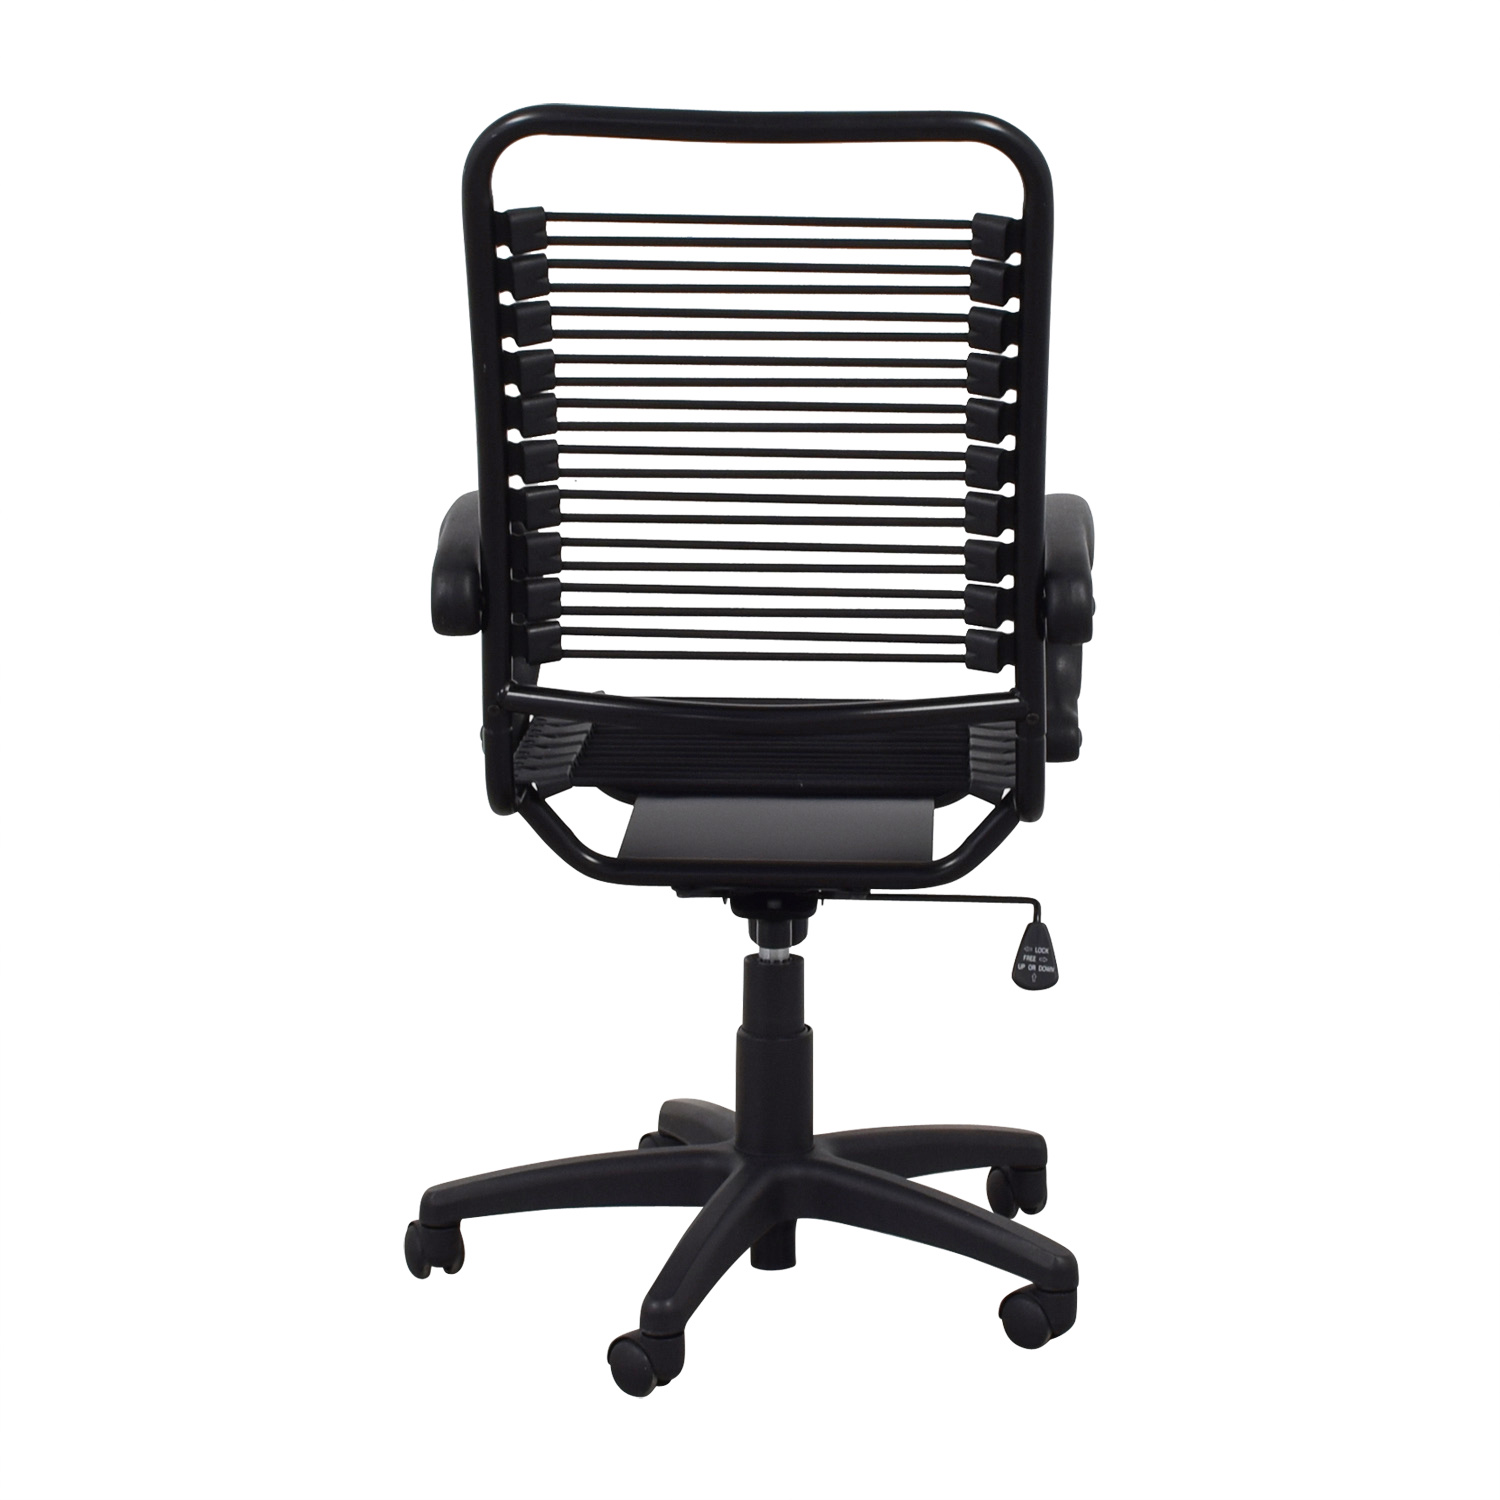 CB2 CB2 Black Studio Office Chair used